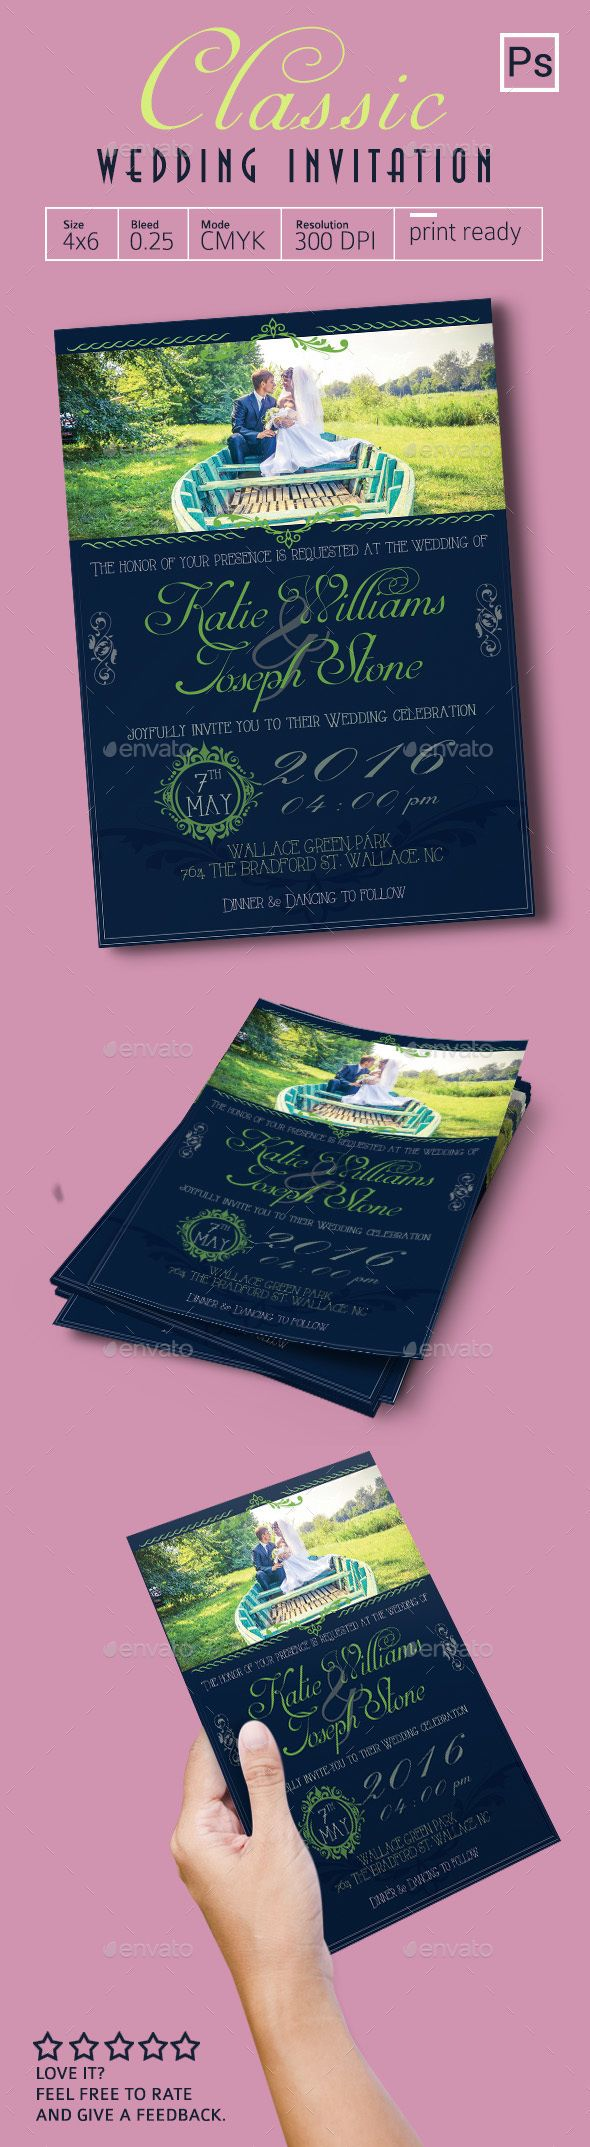 Classic Wedding Invitation - Weddings Cards & Invites